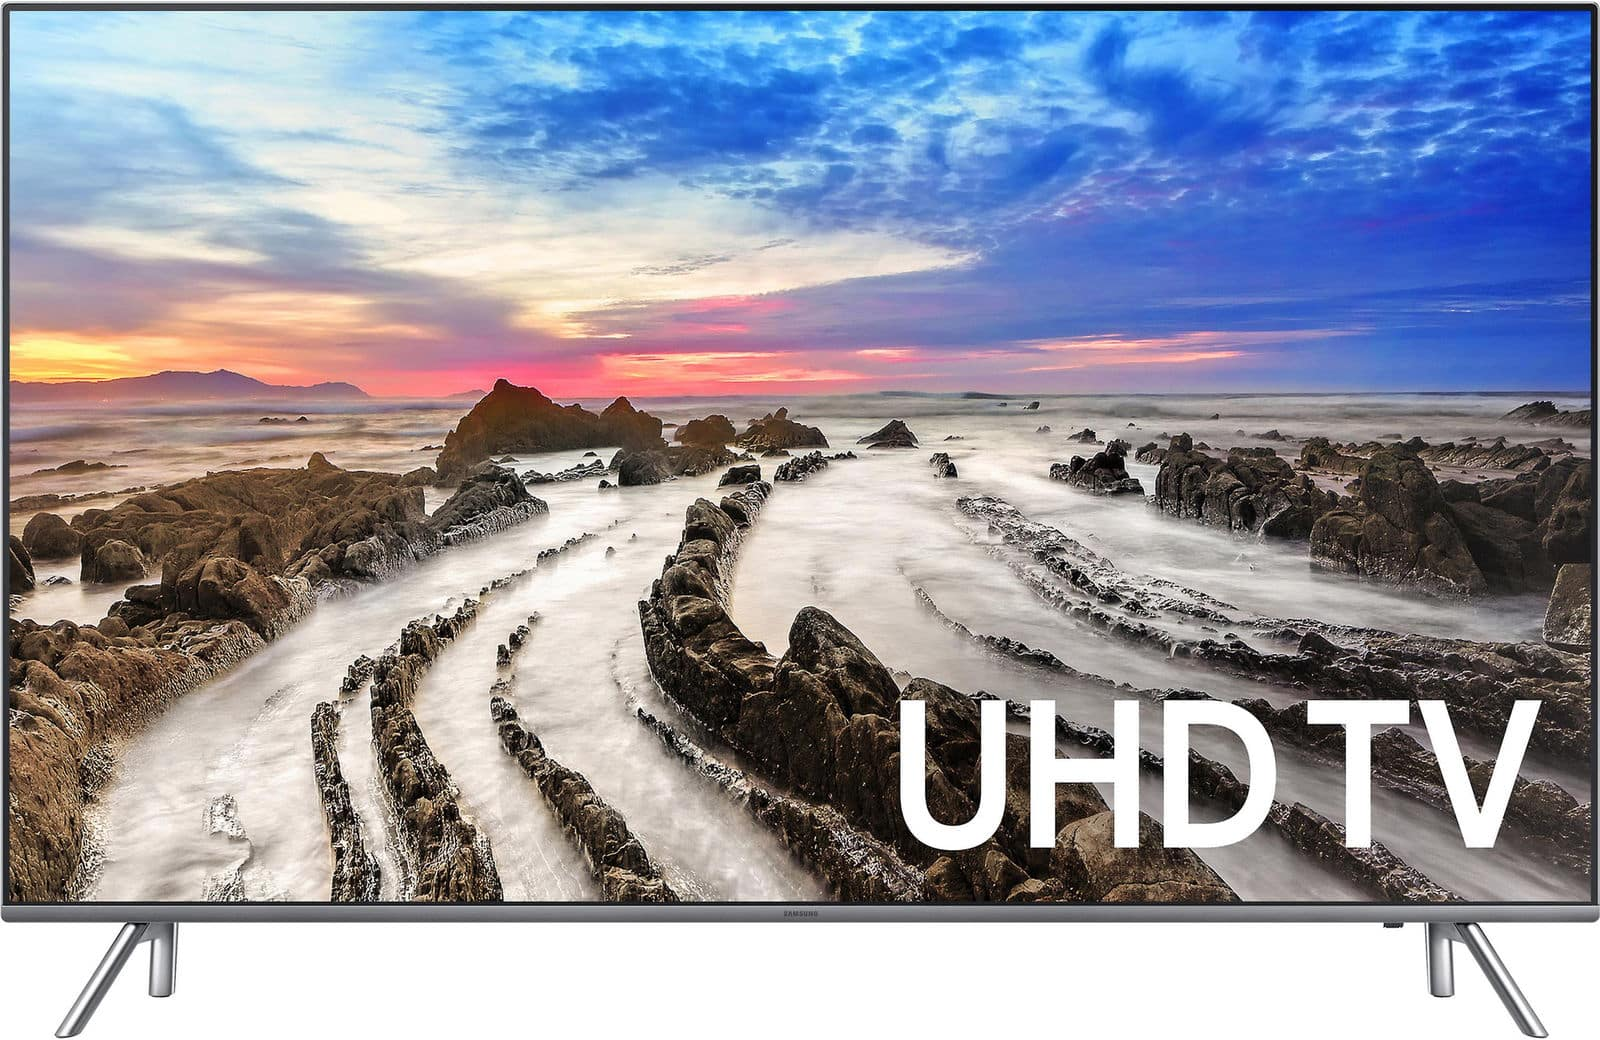 Samsung 65 in. 2160p 4K HDR LED 120Hz Smart TV UN65MU8000 $1126.00 Free Shipping no tax!